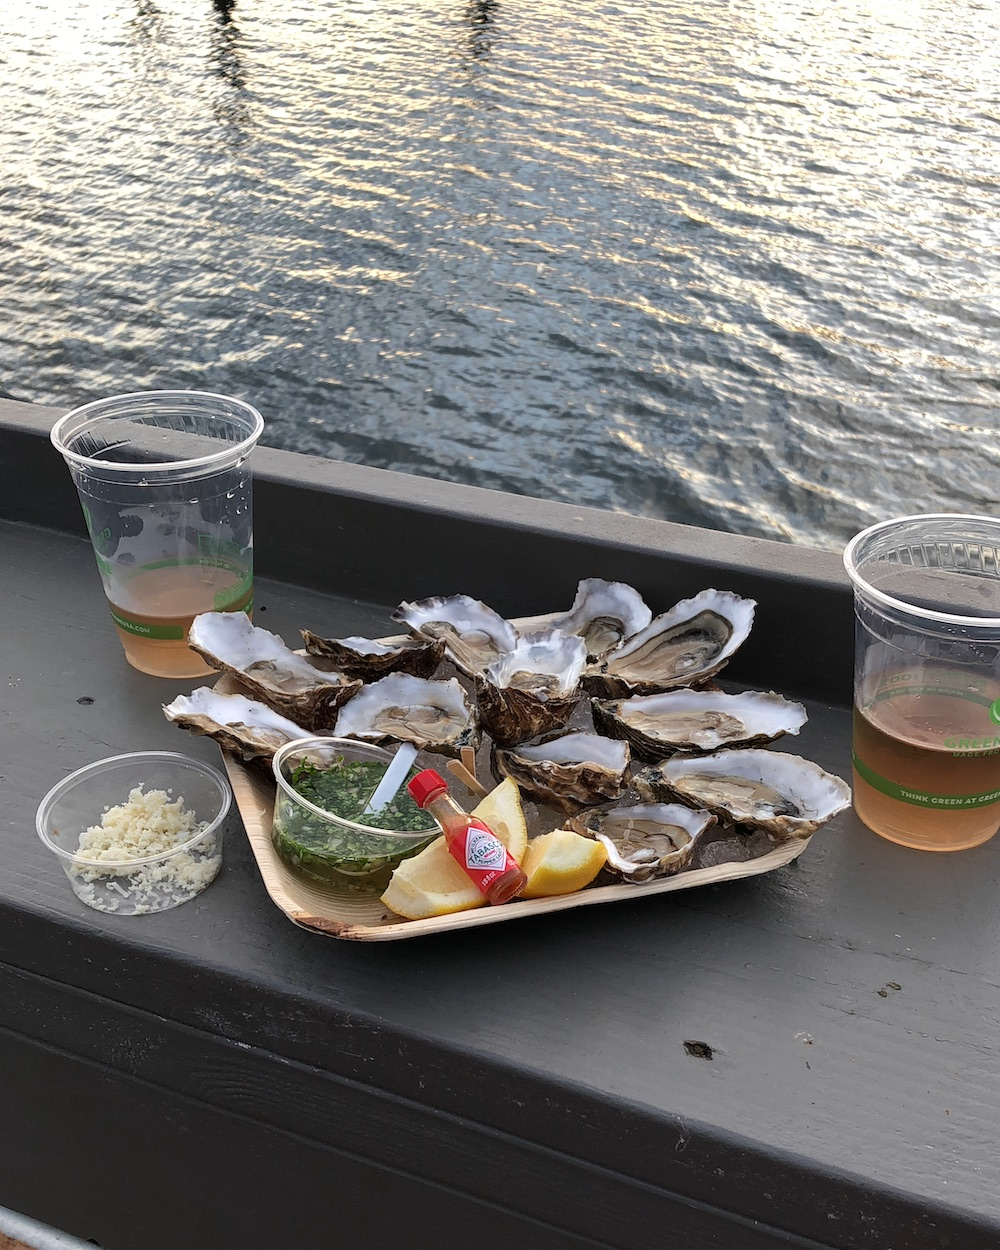 oysters with wine and a sunset view of the bay